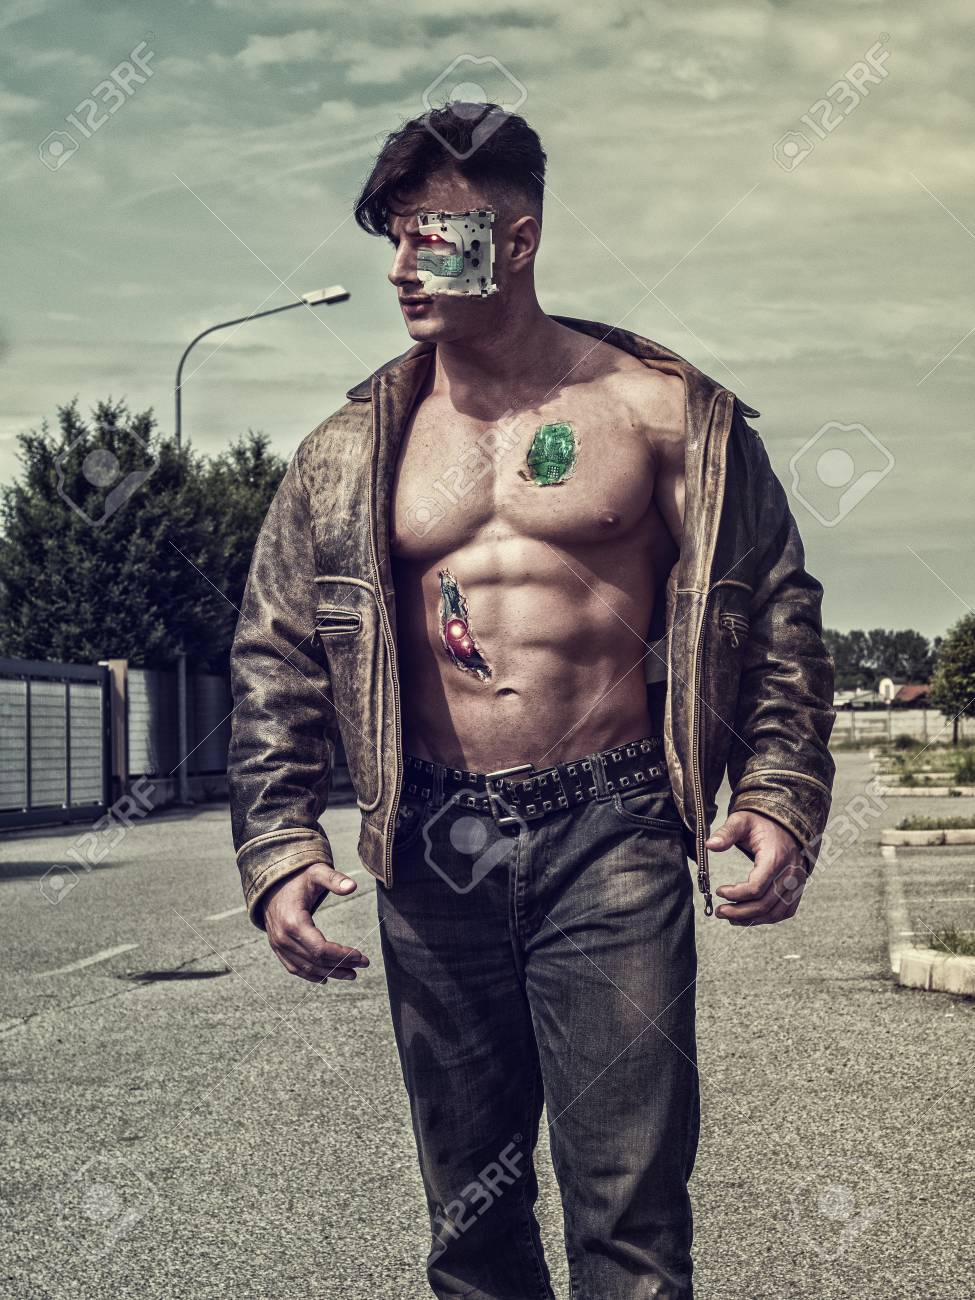 104724959-young-handsome-robotic-man-wearing-leather-jacket-walking-in-the-street-showing-sexy-body-abs-while-.jpg